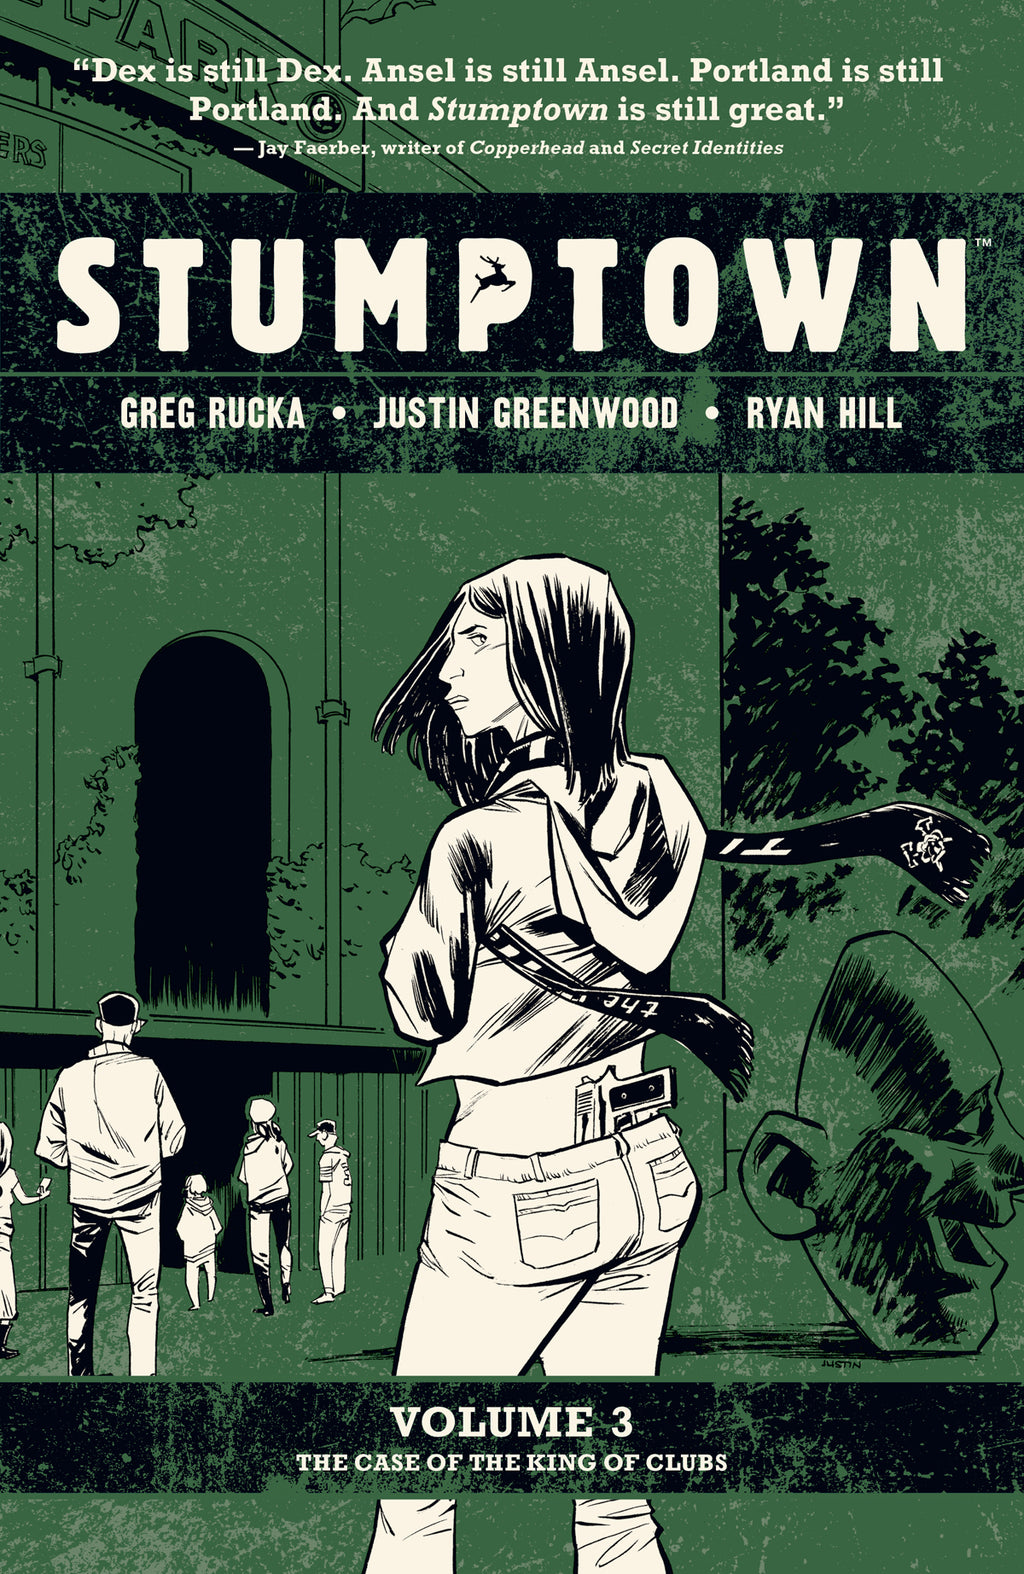 Stumptown Vol. 3 Softcover